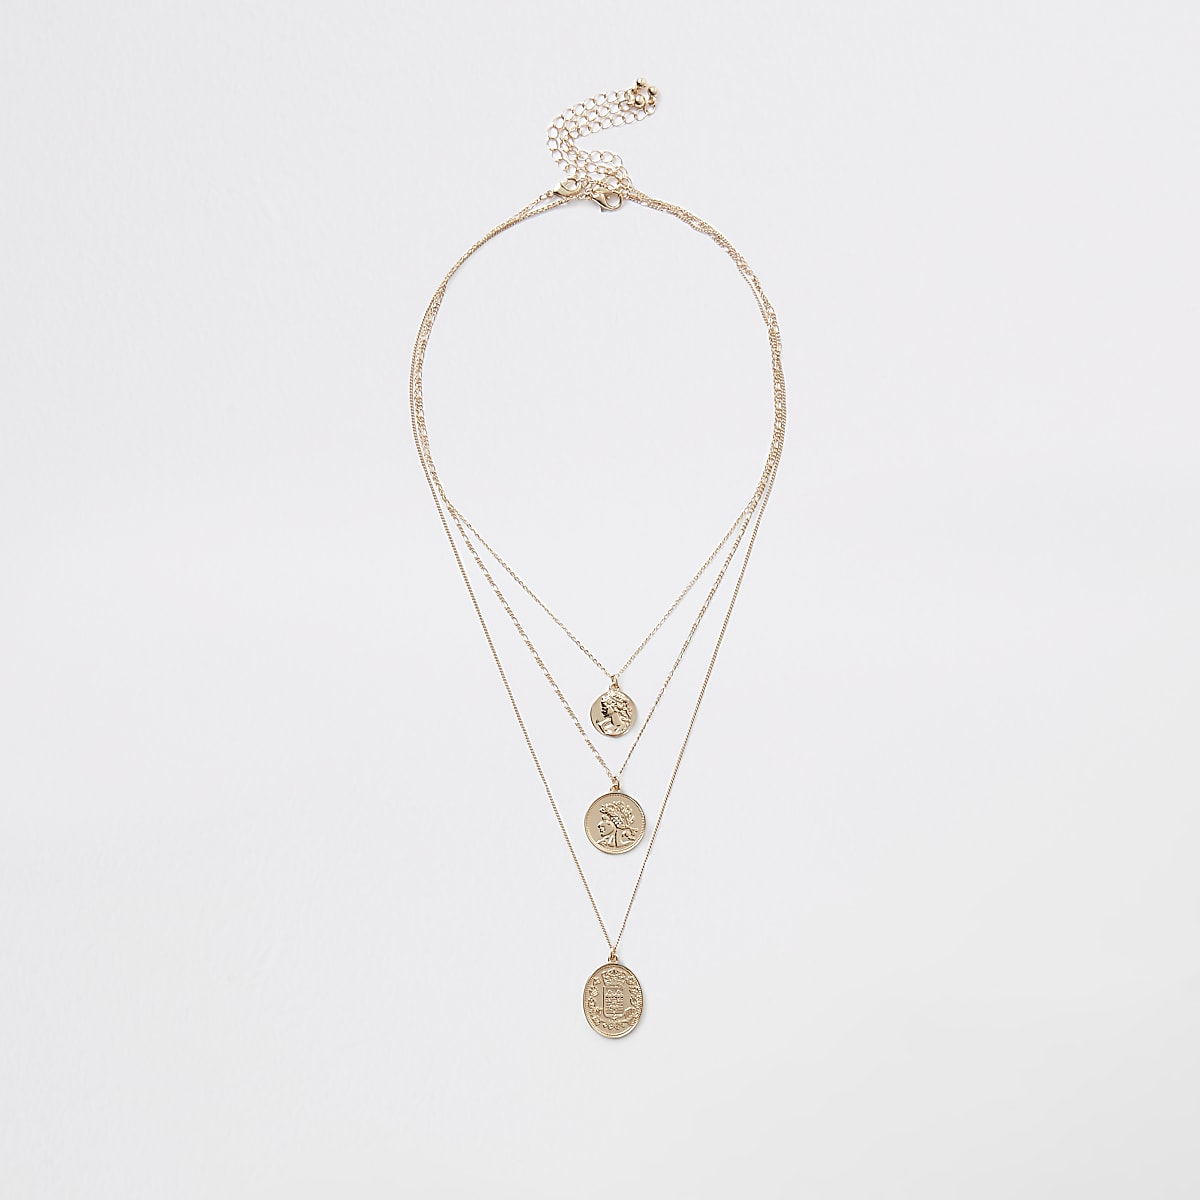 Gold color layered coin necklace